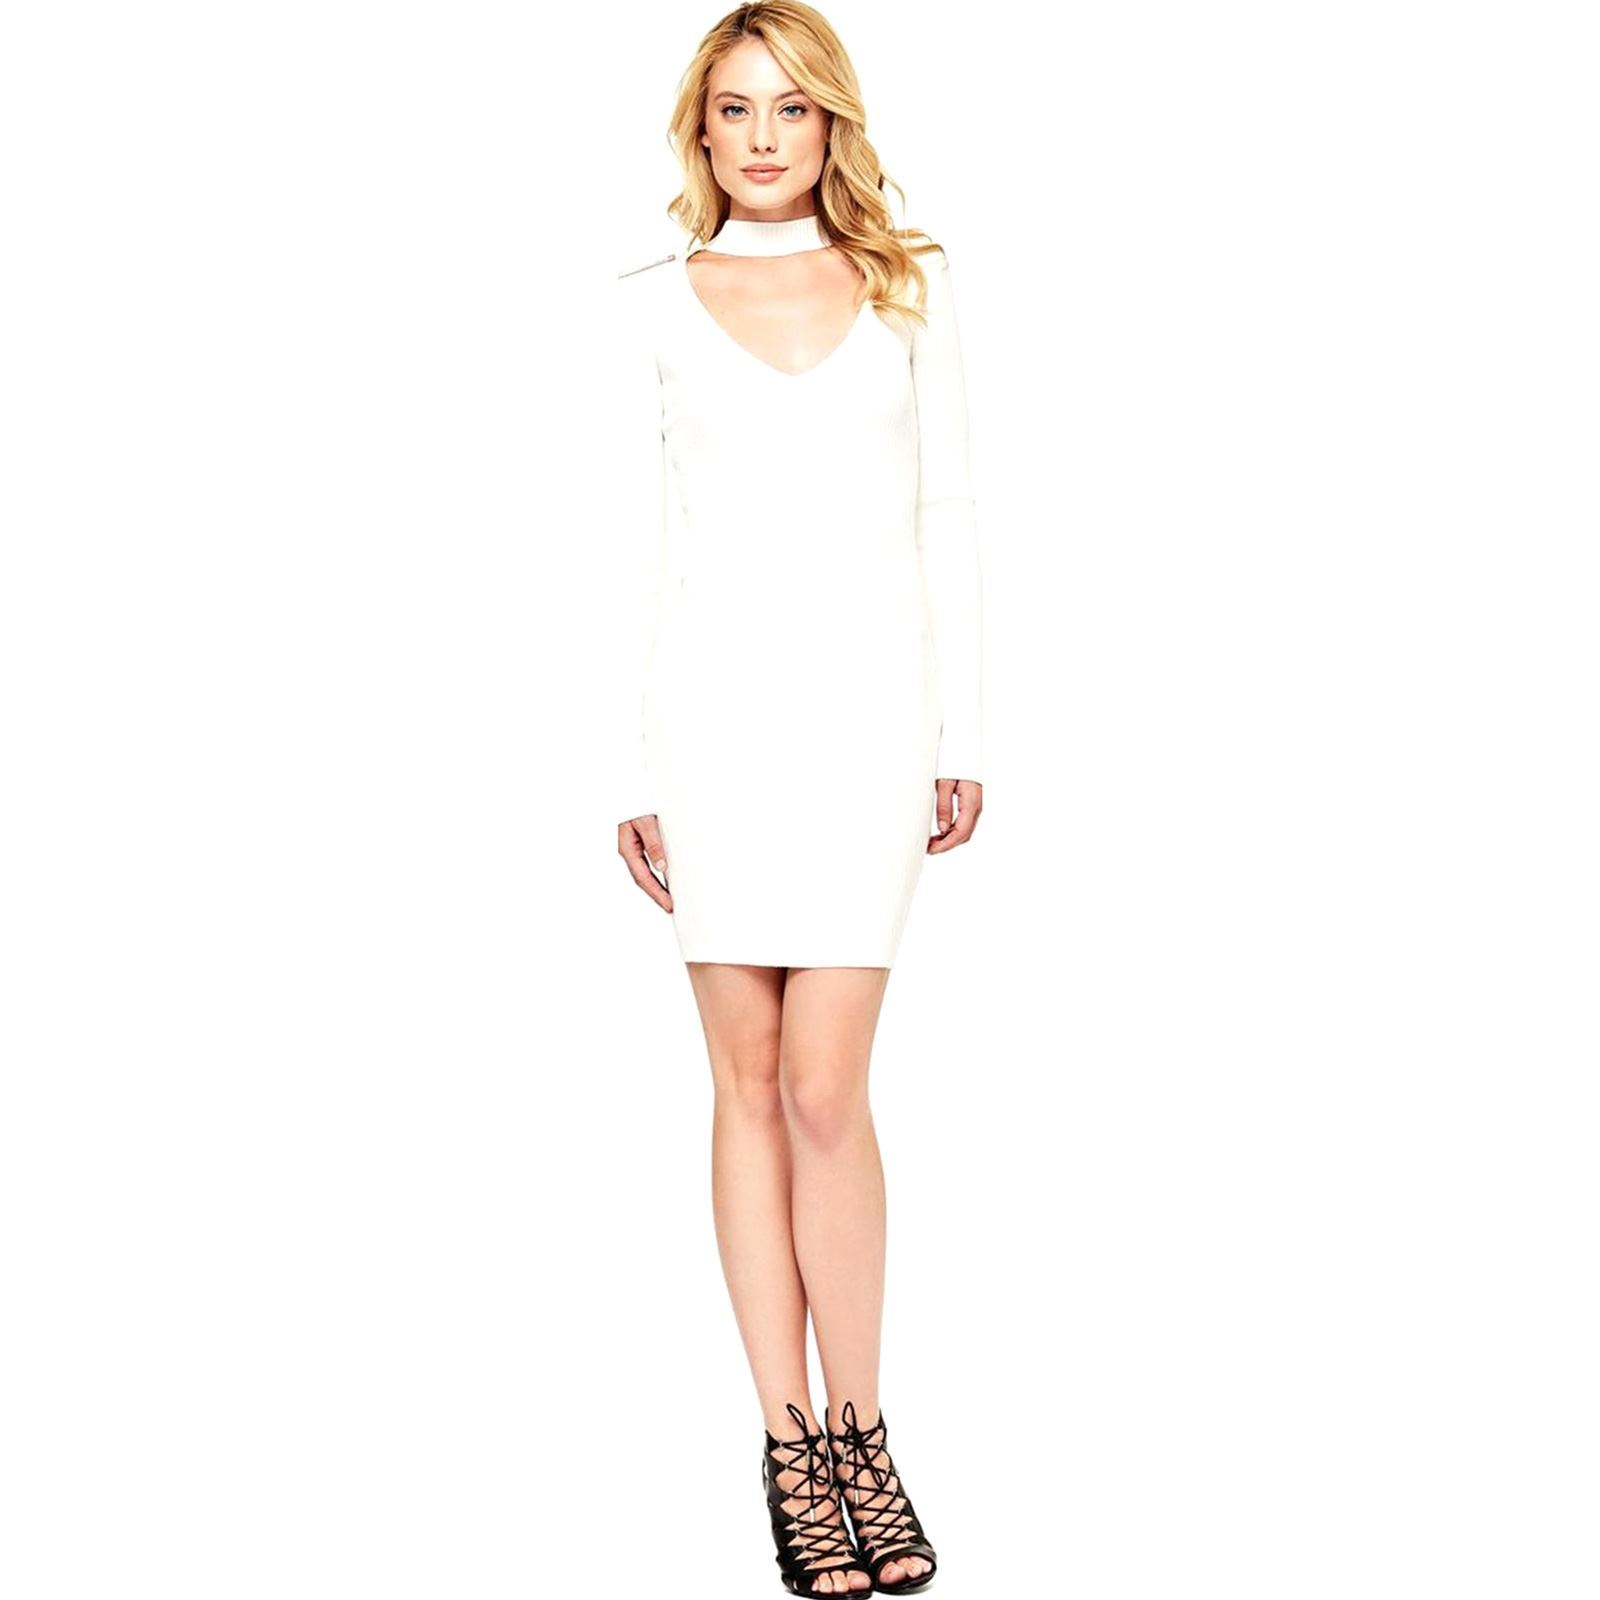 CourteBlanc V Robe Guess Guess Robe Femme W2Y9IDHeE